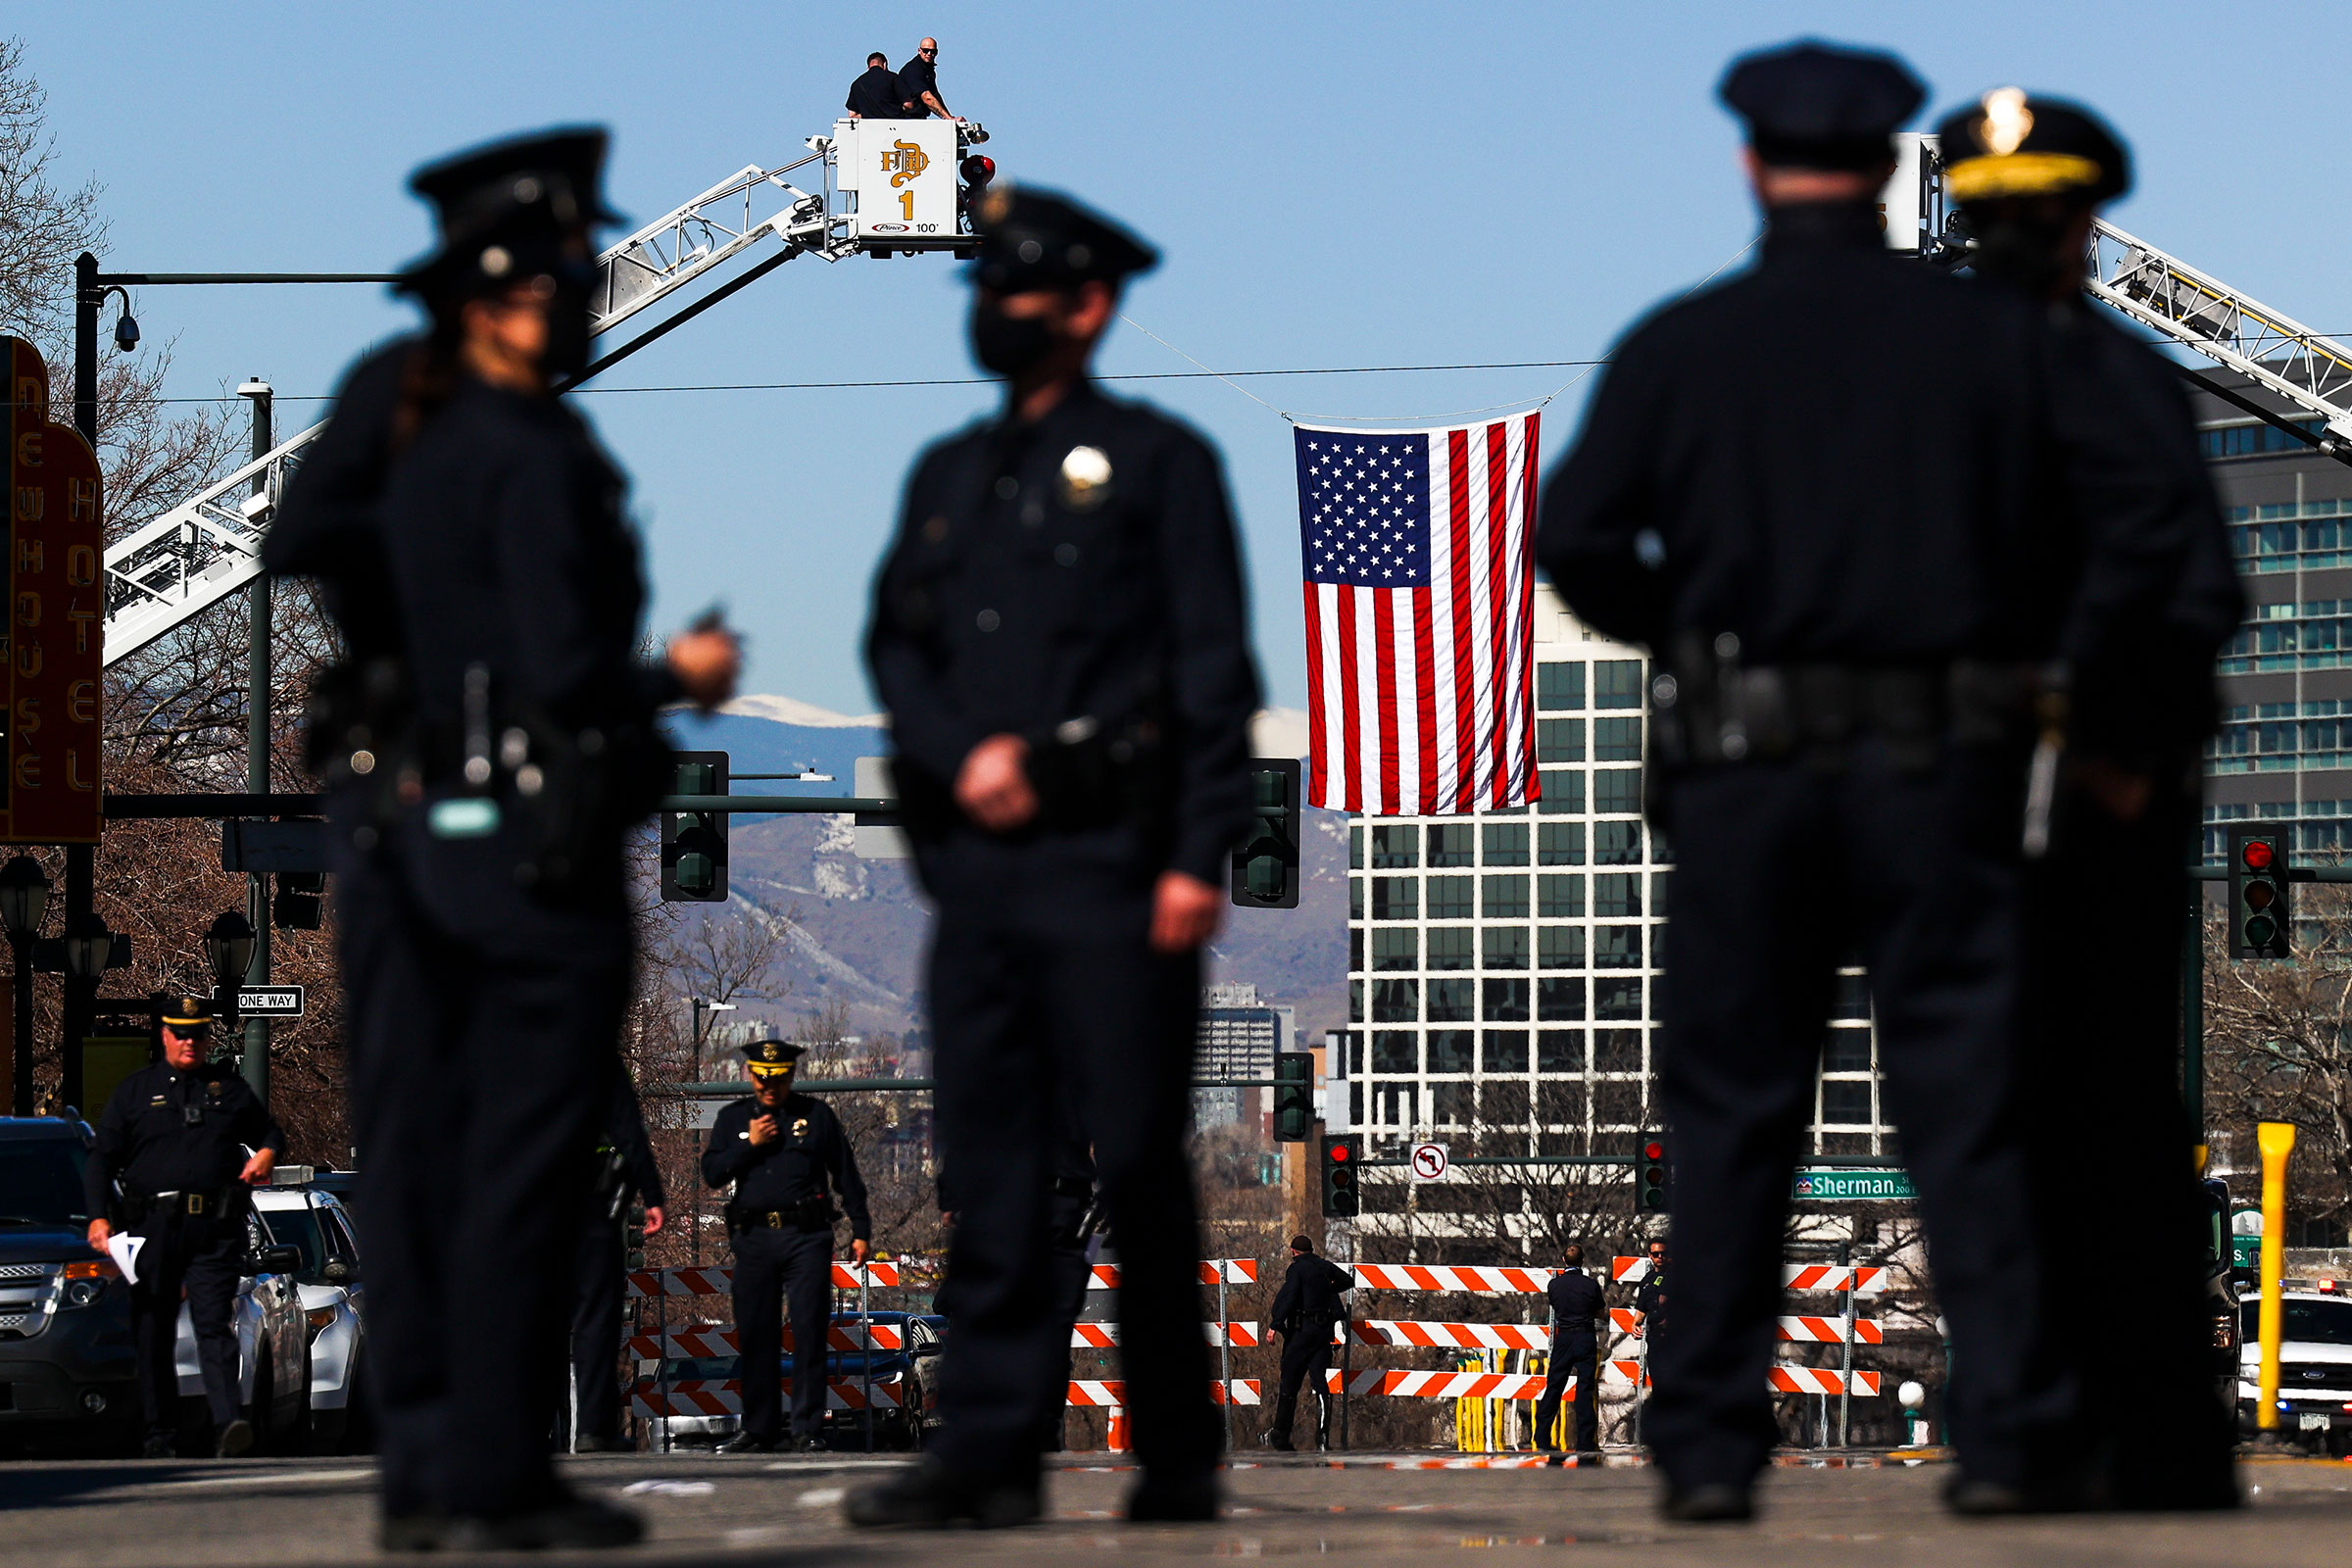 An American flag flies near the Cathedral Basilica of the Immaculate Conception during a funeral mass for slain Boulder Police officer Eric Talley on March 29, 2021 in Denver, Colorado.